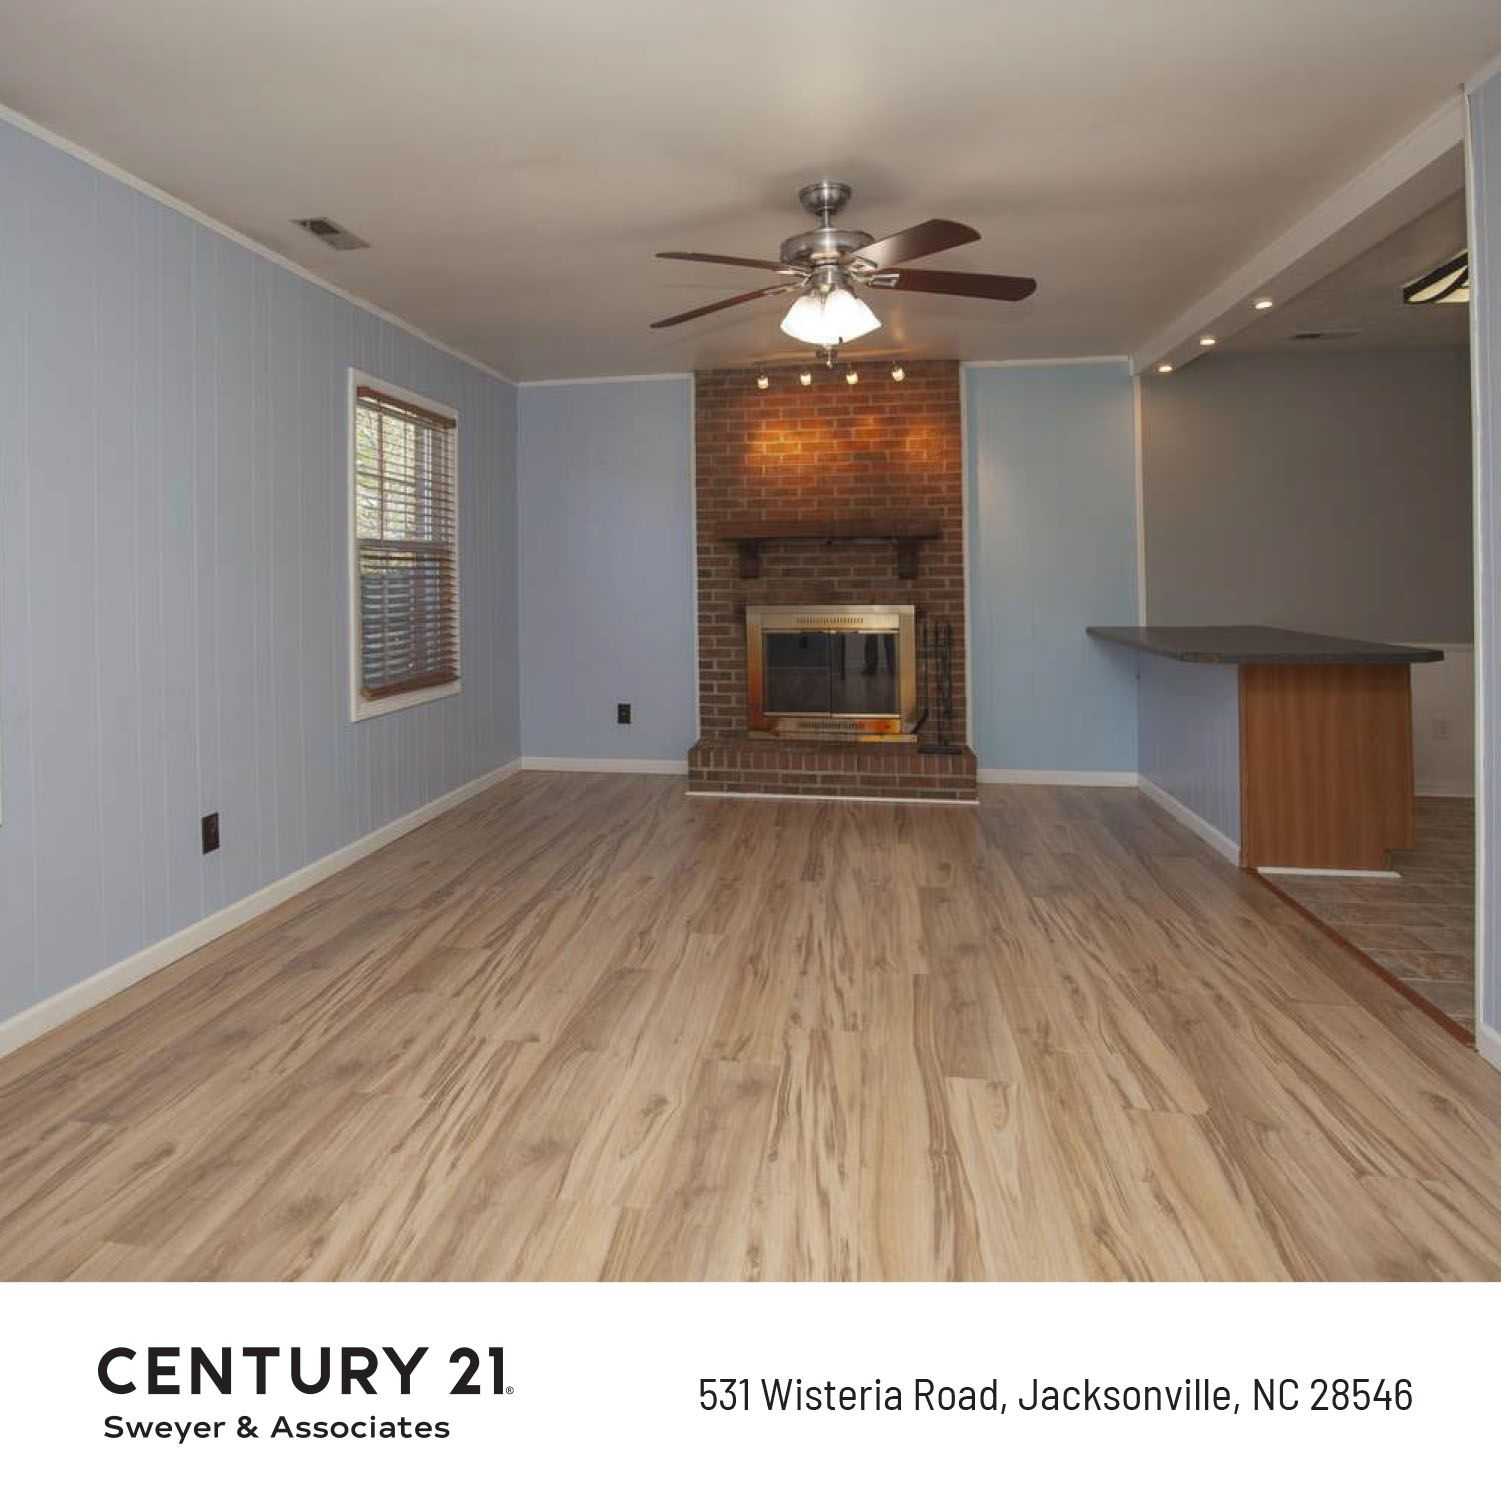 531 Wisteria Road, Jacksonville, NC 28546 in 2020 Home